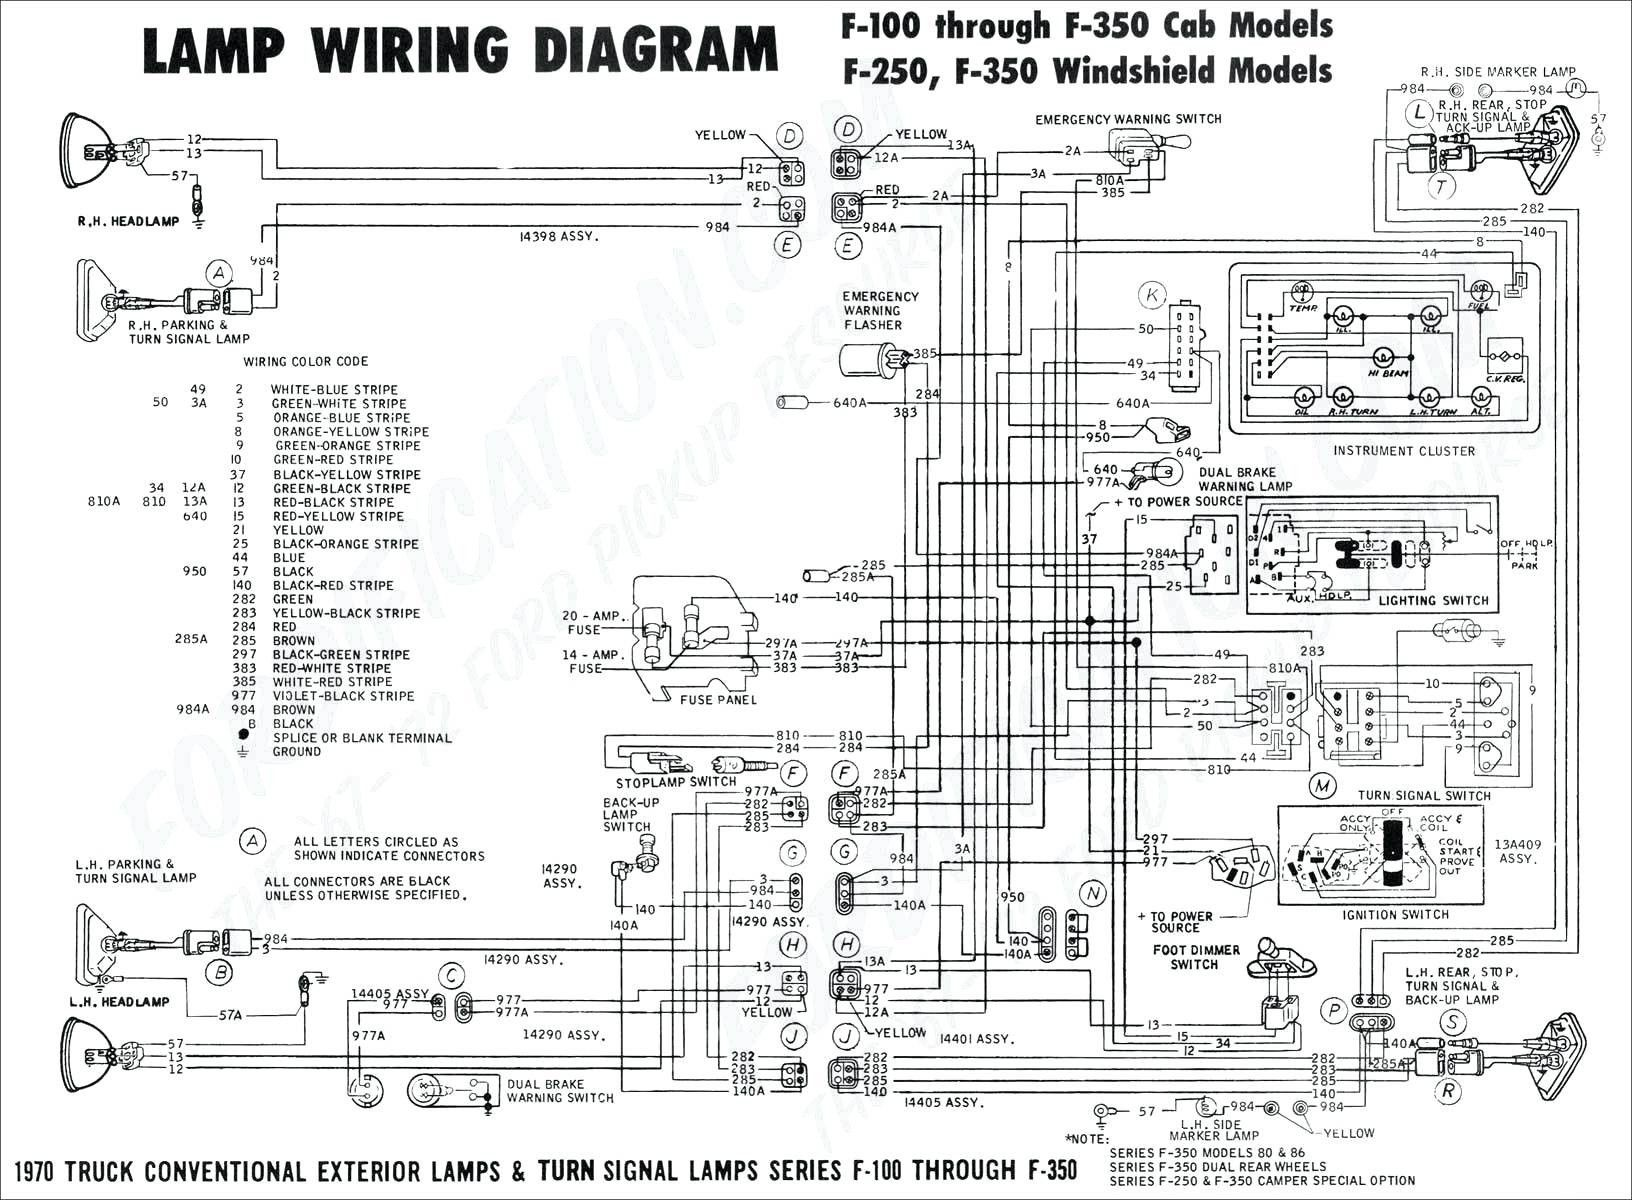 2003 Ford Focus Wiring Diagram Di 2020 Nissan Maxima Ford Explorer Nissan